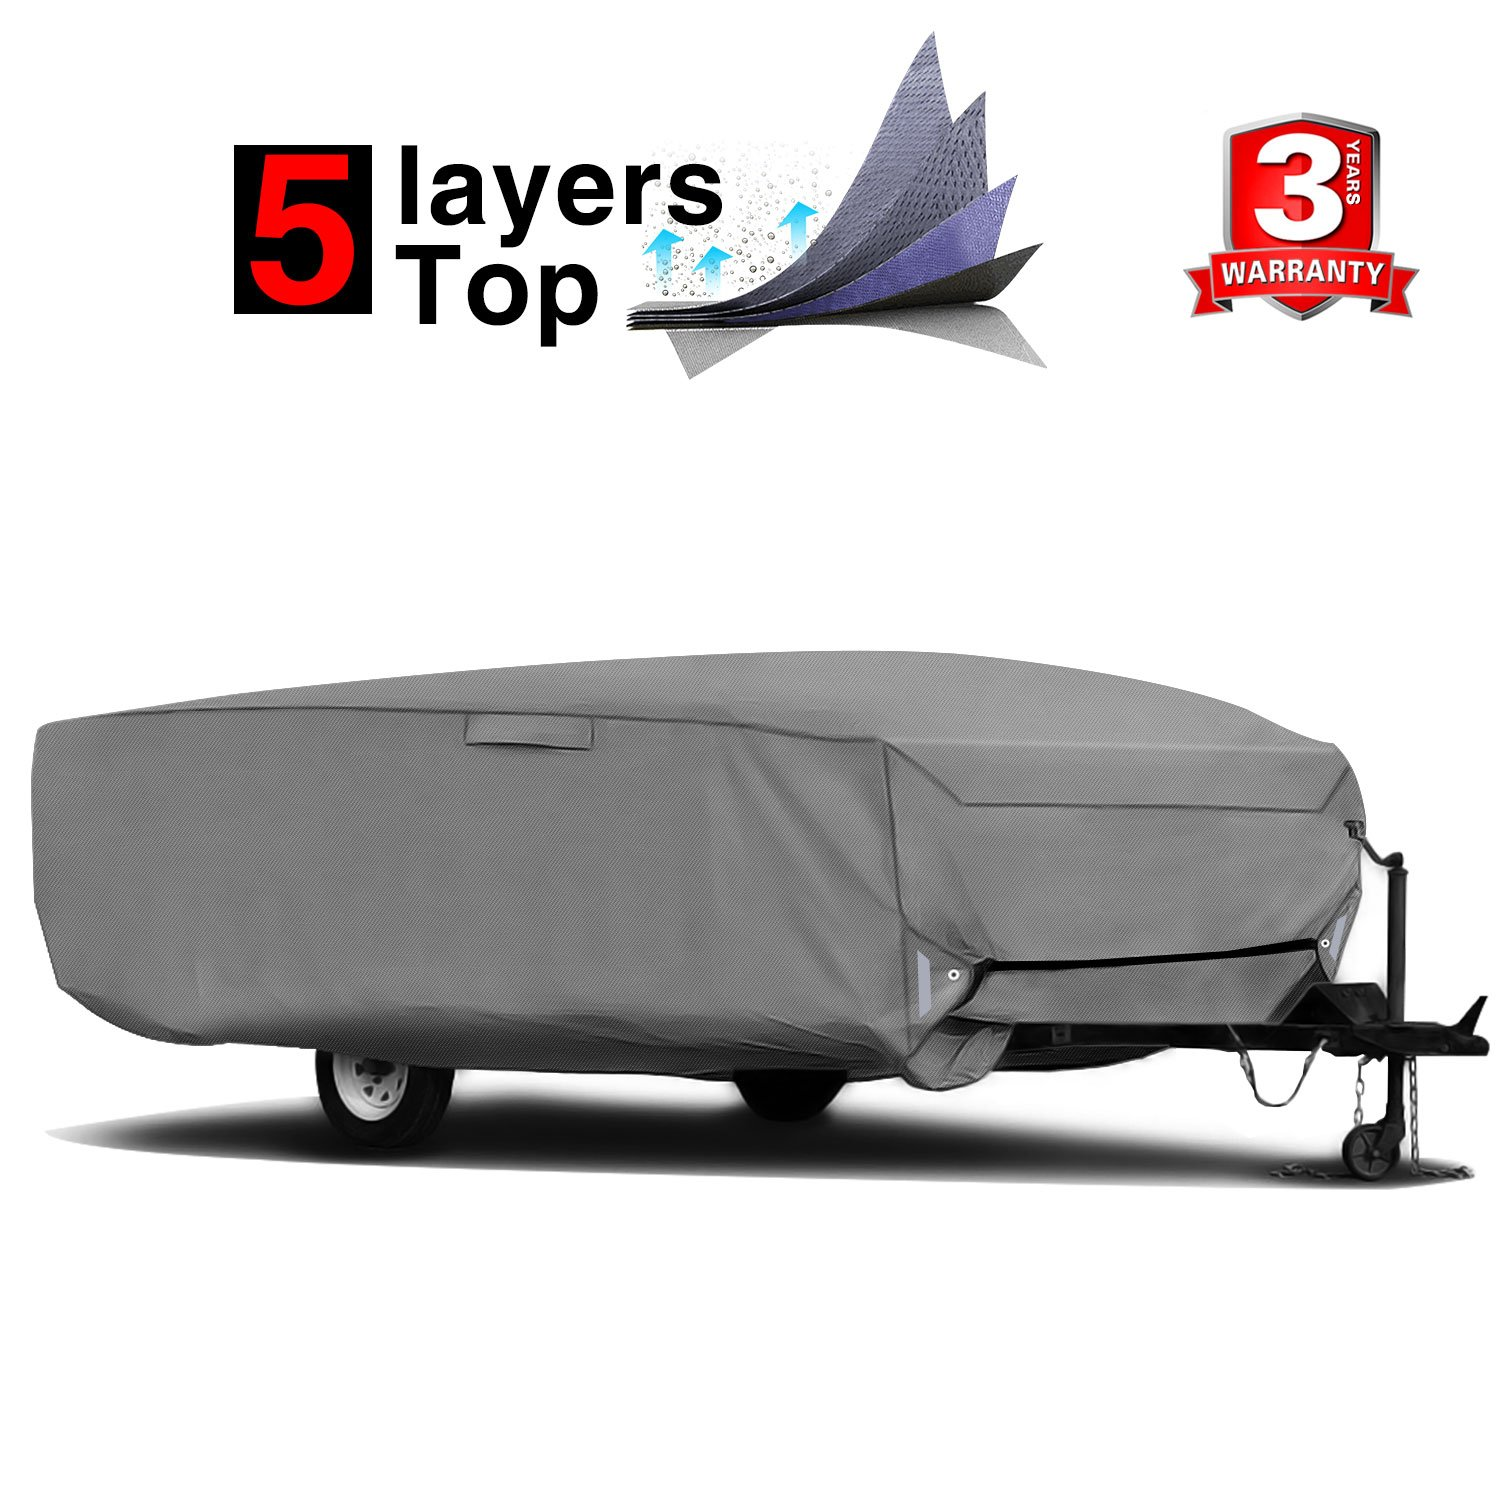 RVMasking Extra-Thick 5 Layers Pop-up/Folding Camper Trailer Cover, Fits 8'-10' Trailers - Breathable Waterproof Tearproof Anti-UV RV Cover, 5 PCS Windproof Buckles & Adhesive Repair Patch(25.4'&59')